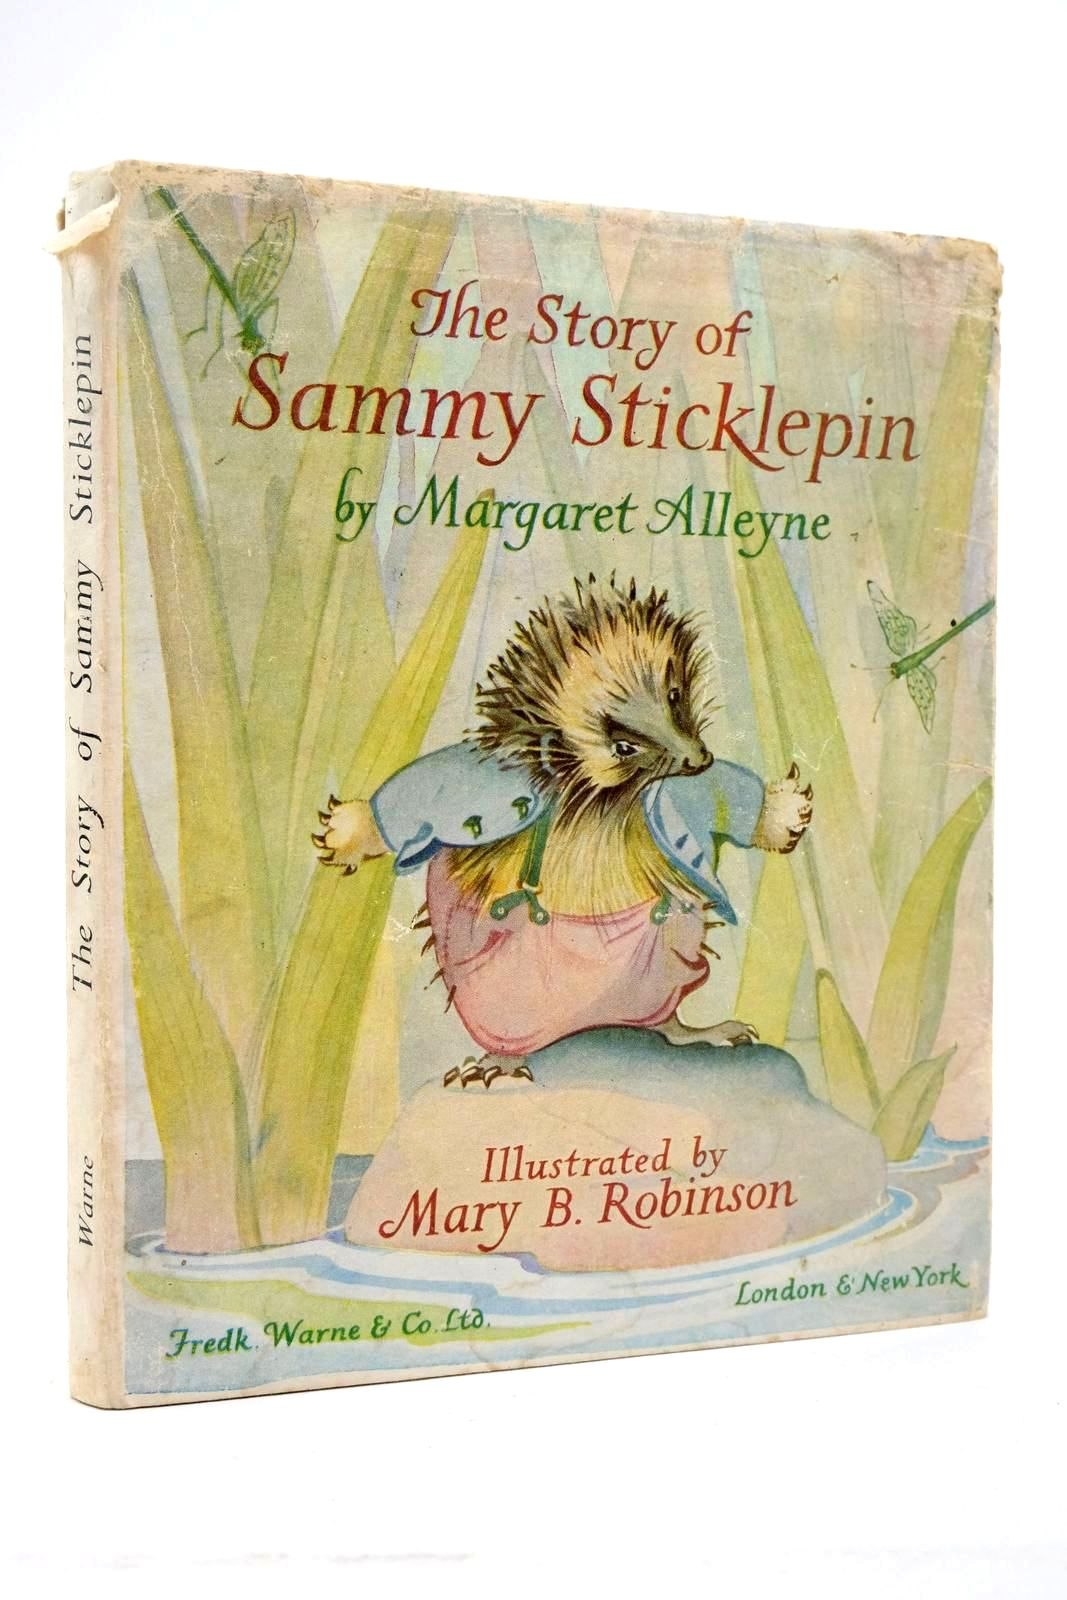 Photo of THE STORY OF SAMMY STICKLEPIN written by Alleyne, Margaret illustrated by Robinson, Mary published by Frederick Warne & Co Ltd. (STOCK CODE: 2135485)  for sale by Stella & Rose's Books